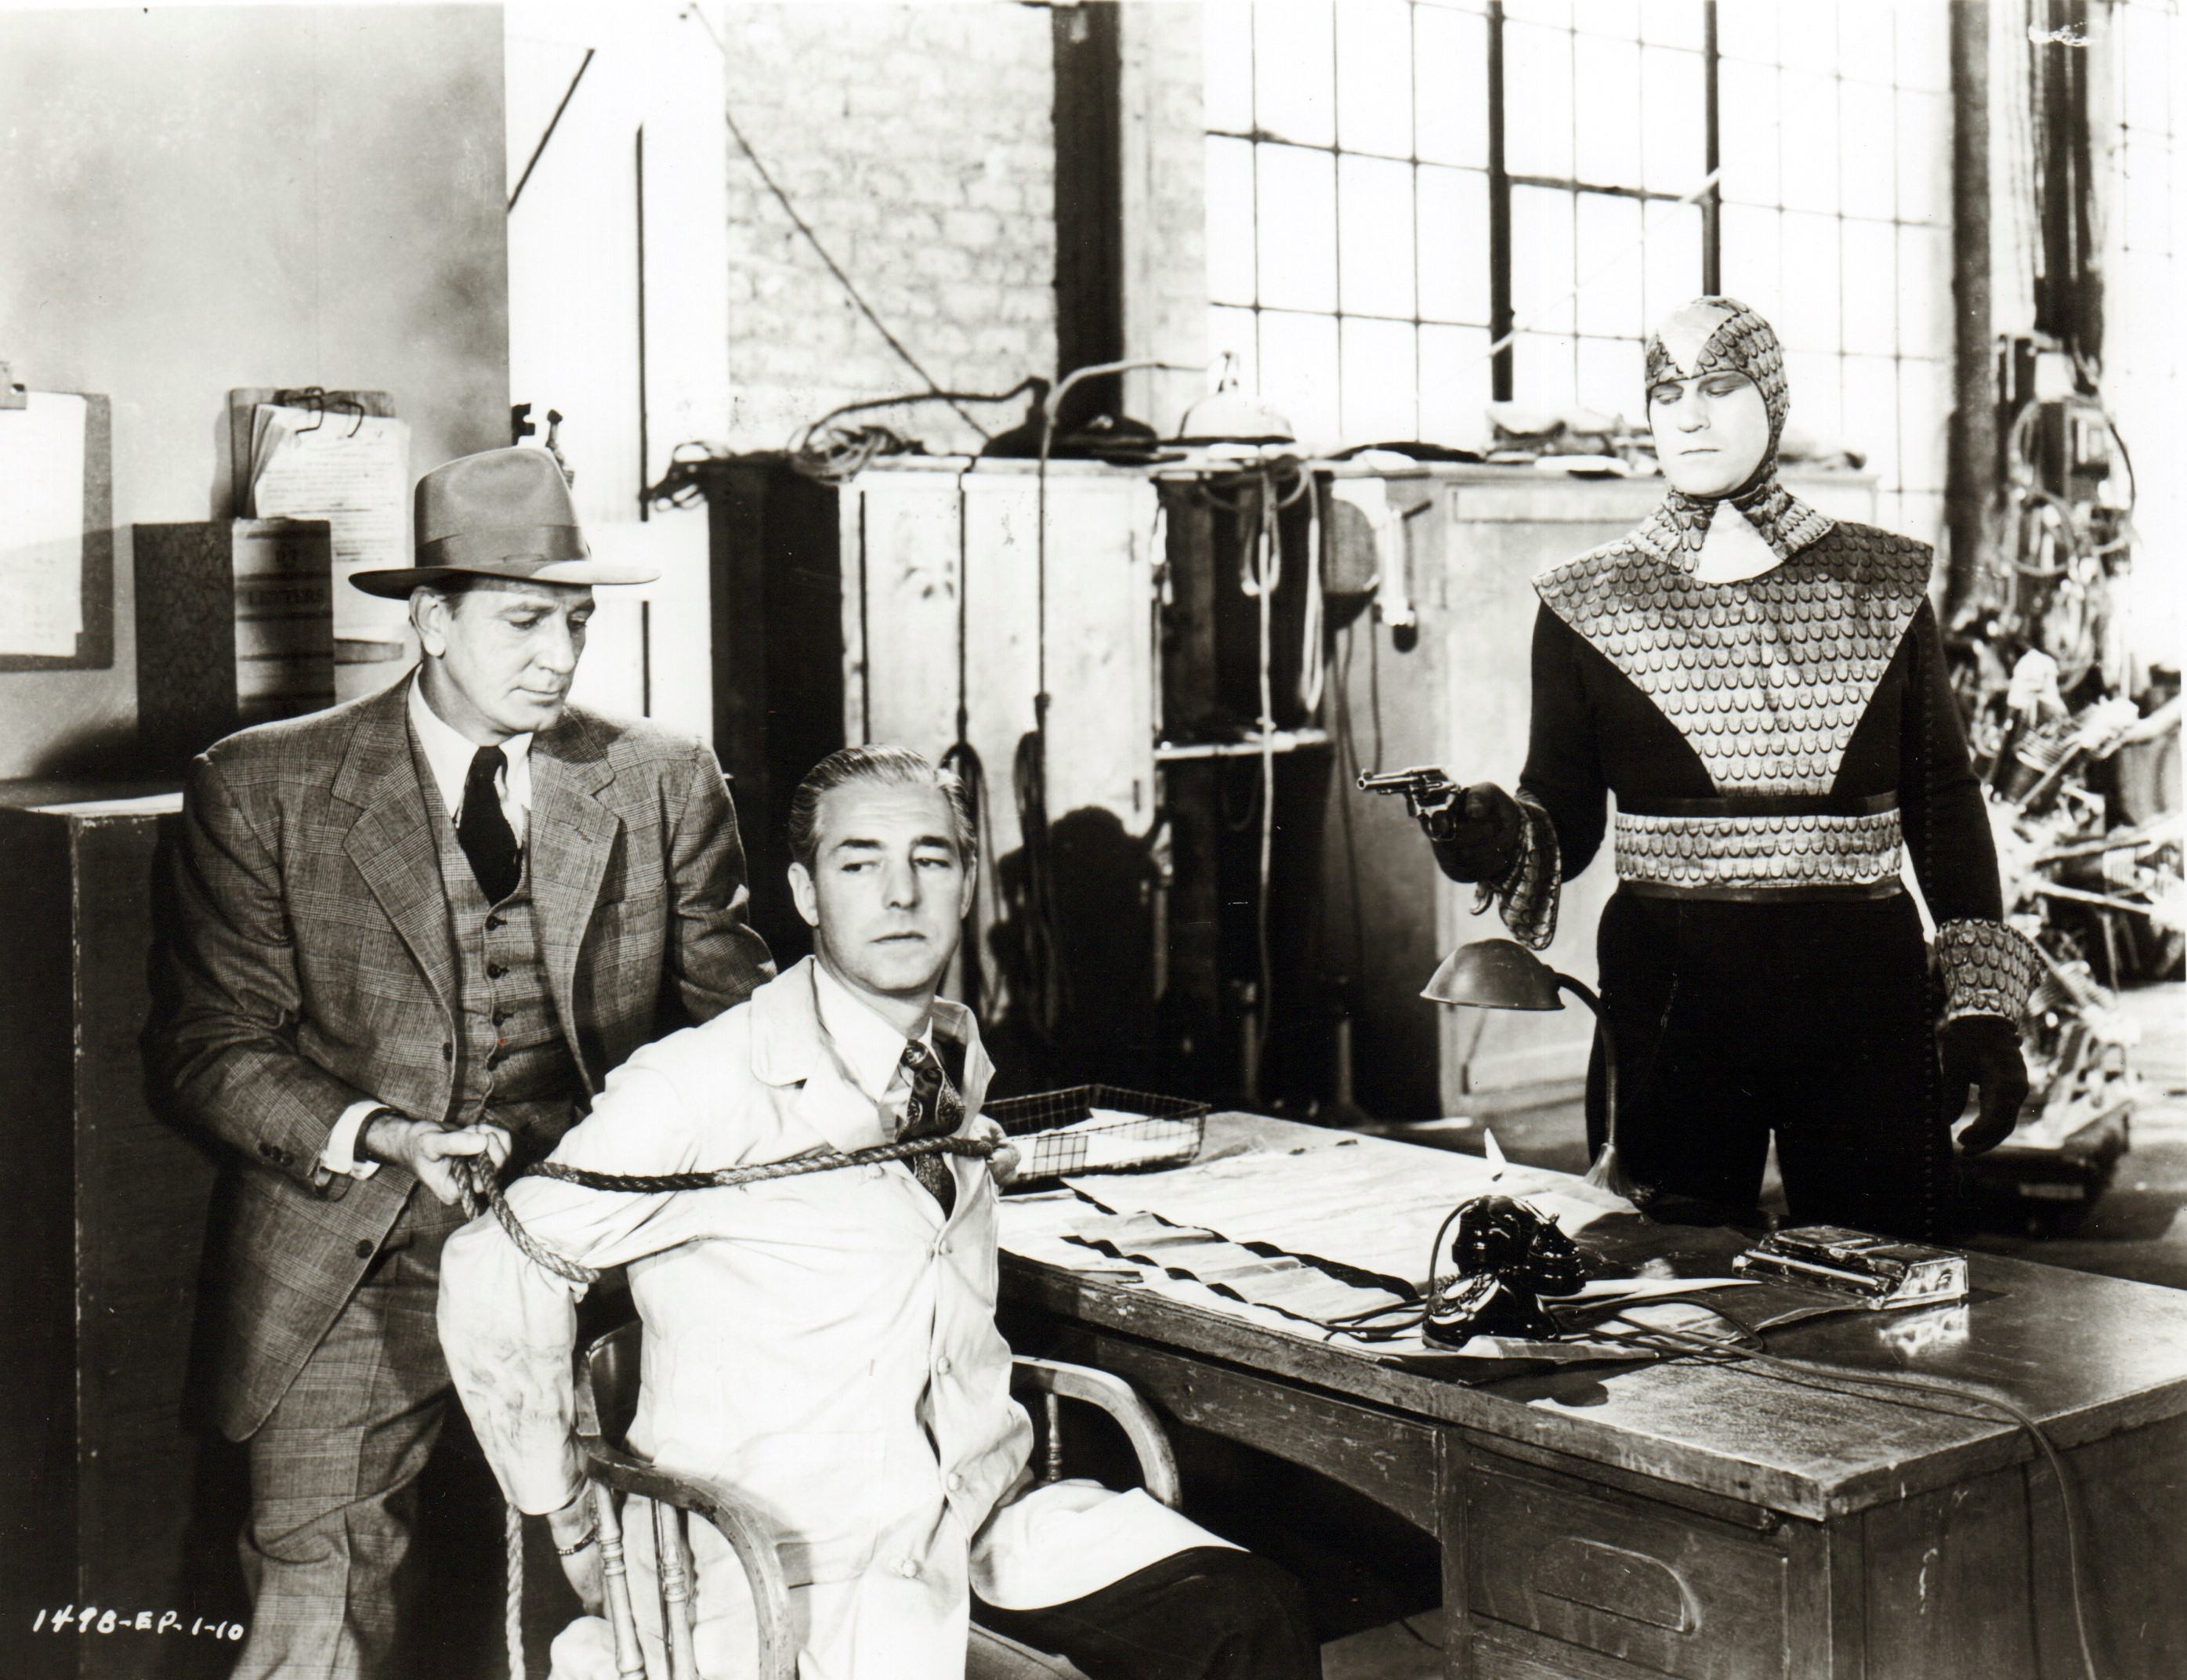 Roy Barcroft, Kenne Duncan, and Bud Geary in The Purple Monster Strikes (1945)